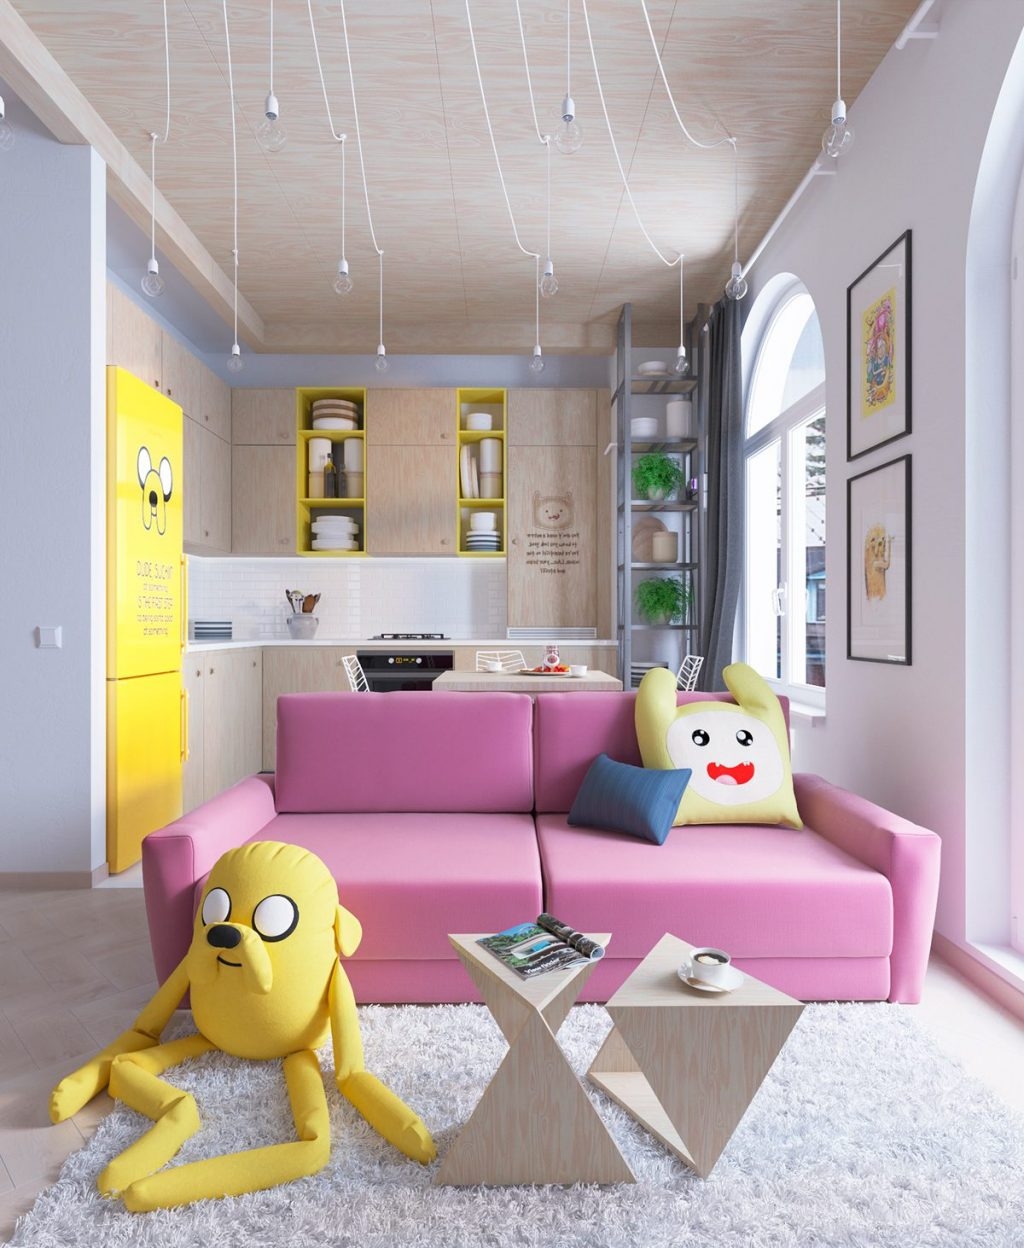 Bright Scandinavian Decor In 3 Small One Bedroom Apartments: Bright Homes In Three Styles: Pop Art, Scandinavian, And Modern